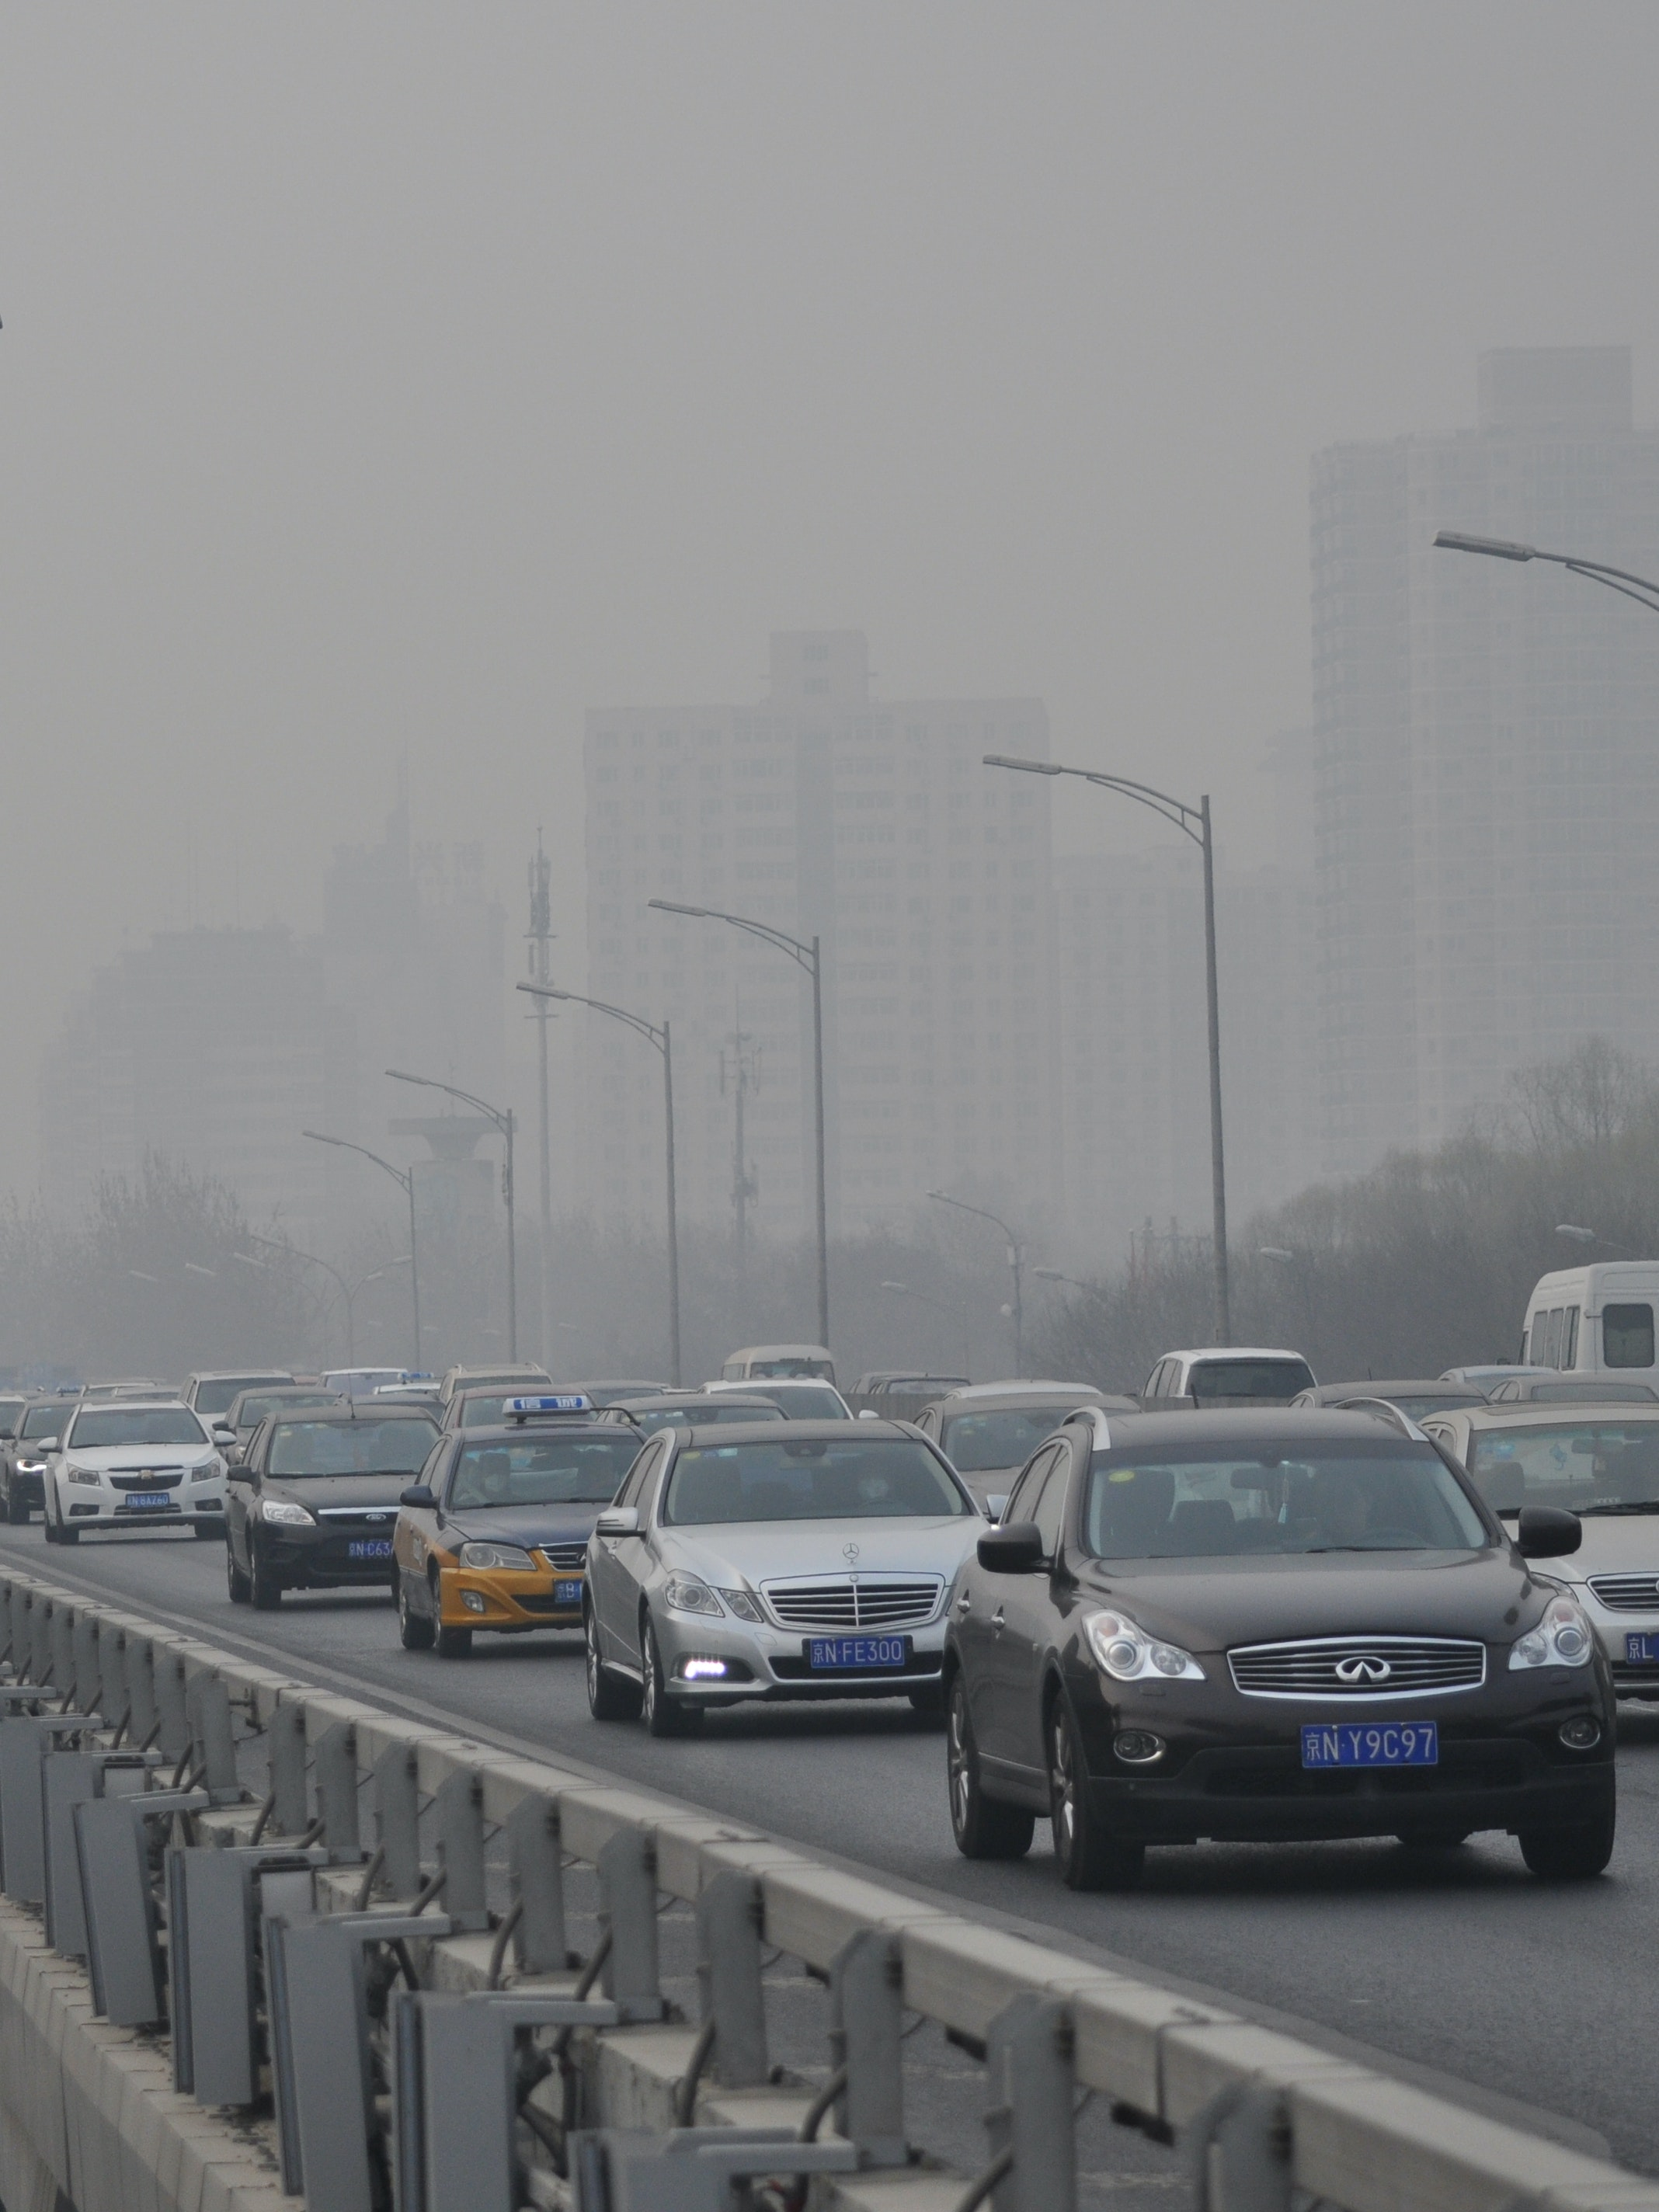 BEIJING, CHINA - MARCH 17:  (CHINA OUT) Vehicles run in the smog on March 17, 2016 in Beijing, China. The Air Quality Index (AQI) of Beijing reached 357 on Thursday and Beijing had sounded the yellow smog alarm from Wednesday.  (Photo by VCG/VCG via Getty Images)